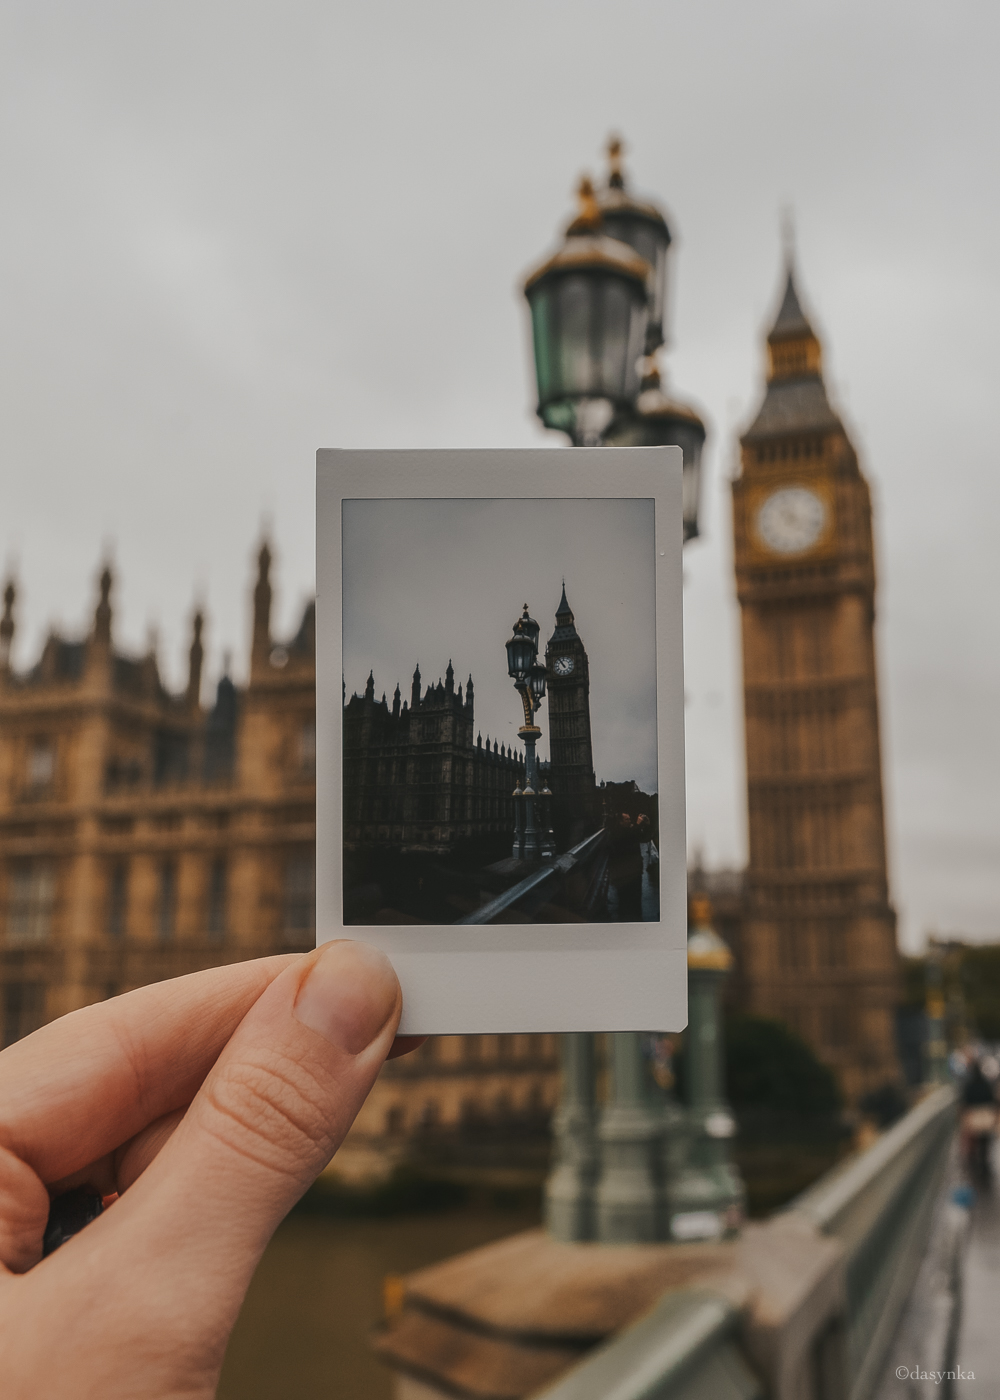 dasynka-fashion-blog-blogger-influencer-inspiration-shooting-globettrotter-travel-traveller-instagram-lifestyle-italy-ideas-italian-polaroids-polaroid-fujifilm-instax-90-8-worldmap-planisfero-mappa-mondo-pin-memories-photographs-vintage-print-london-big-ben-westminster